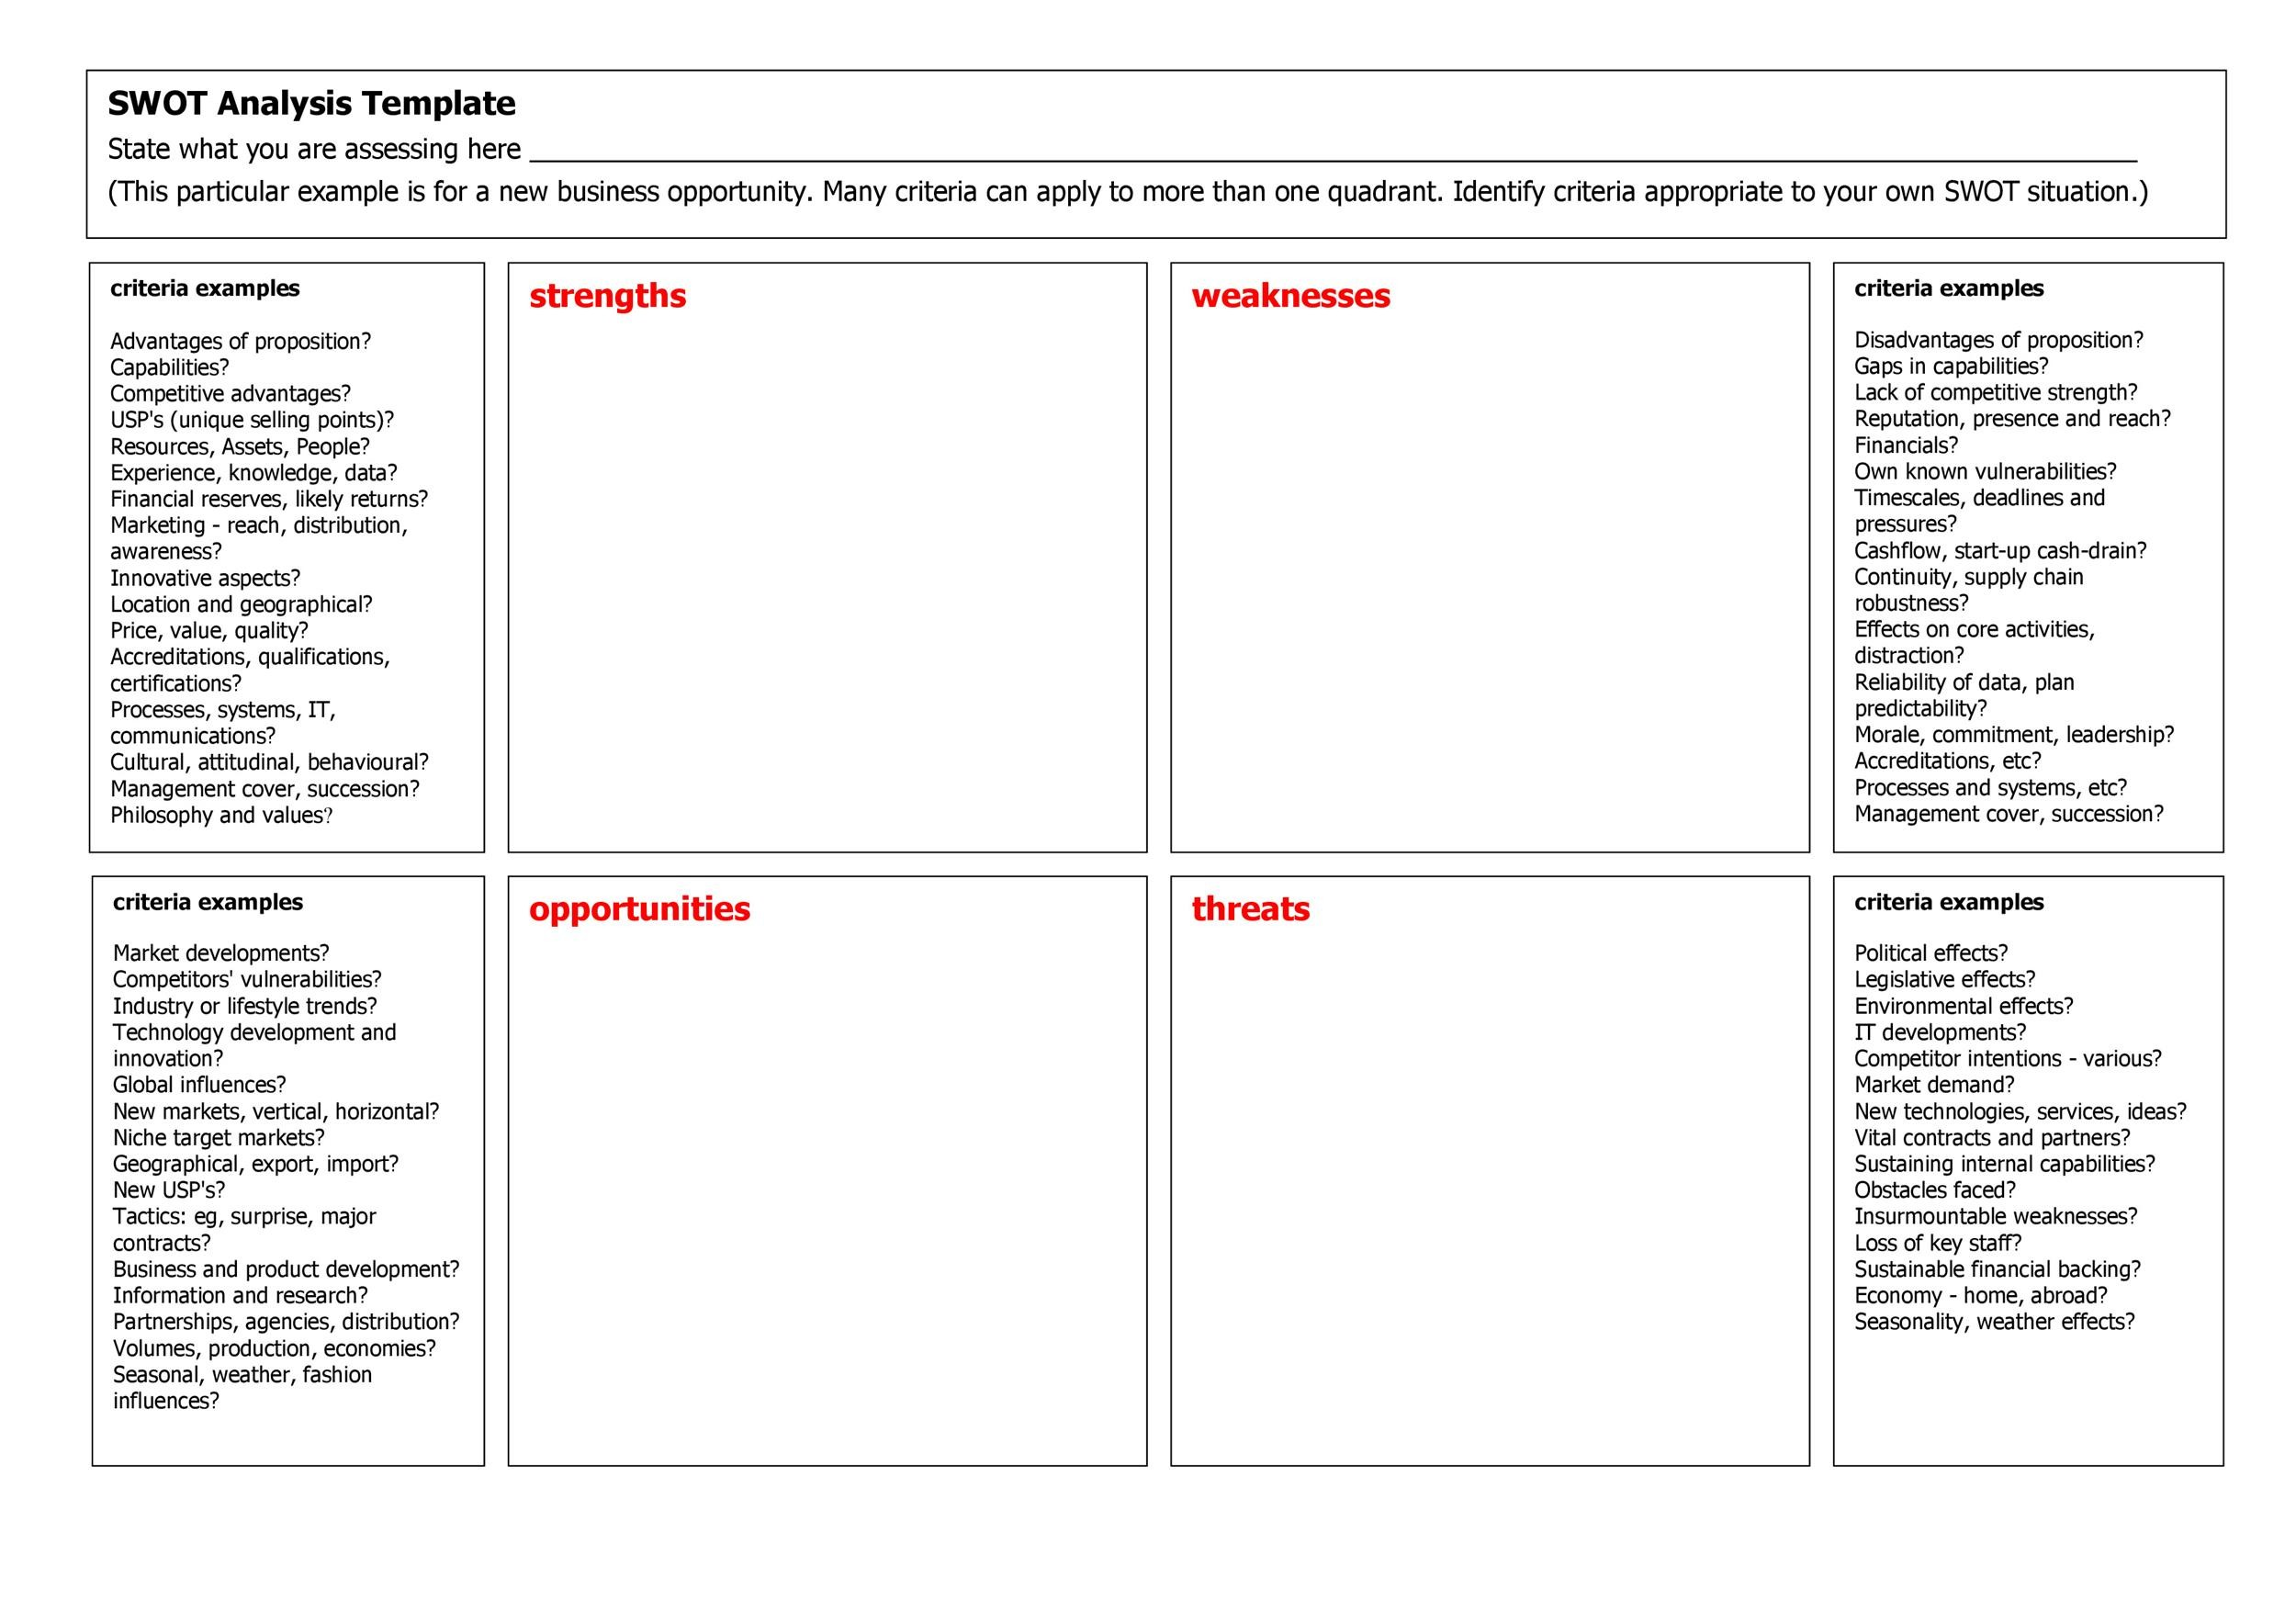 40 powerful swot analysis templates examples free swot analysis template 16 accmission